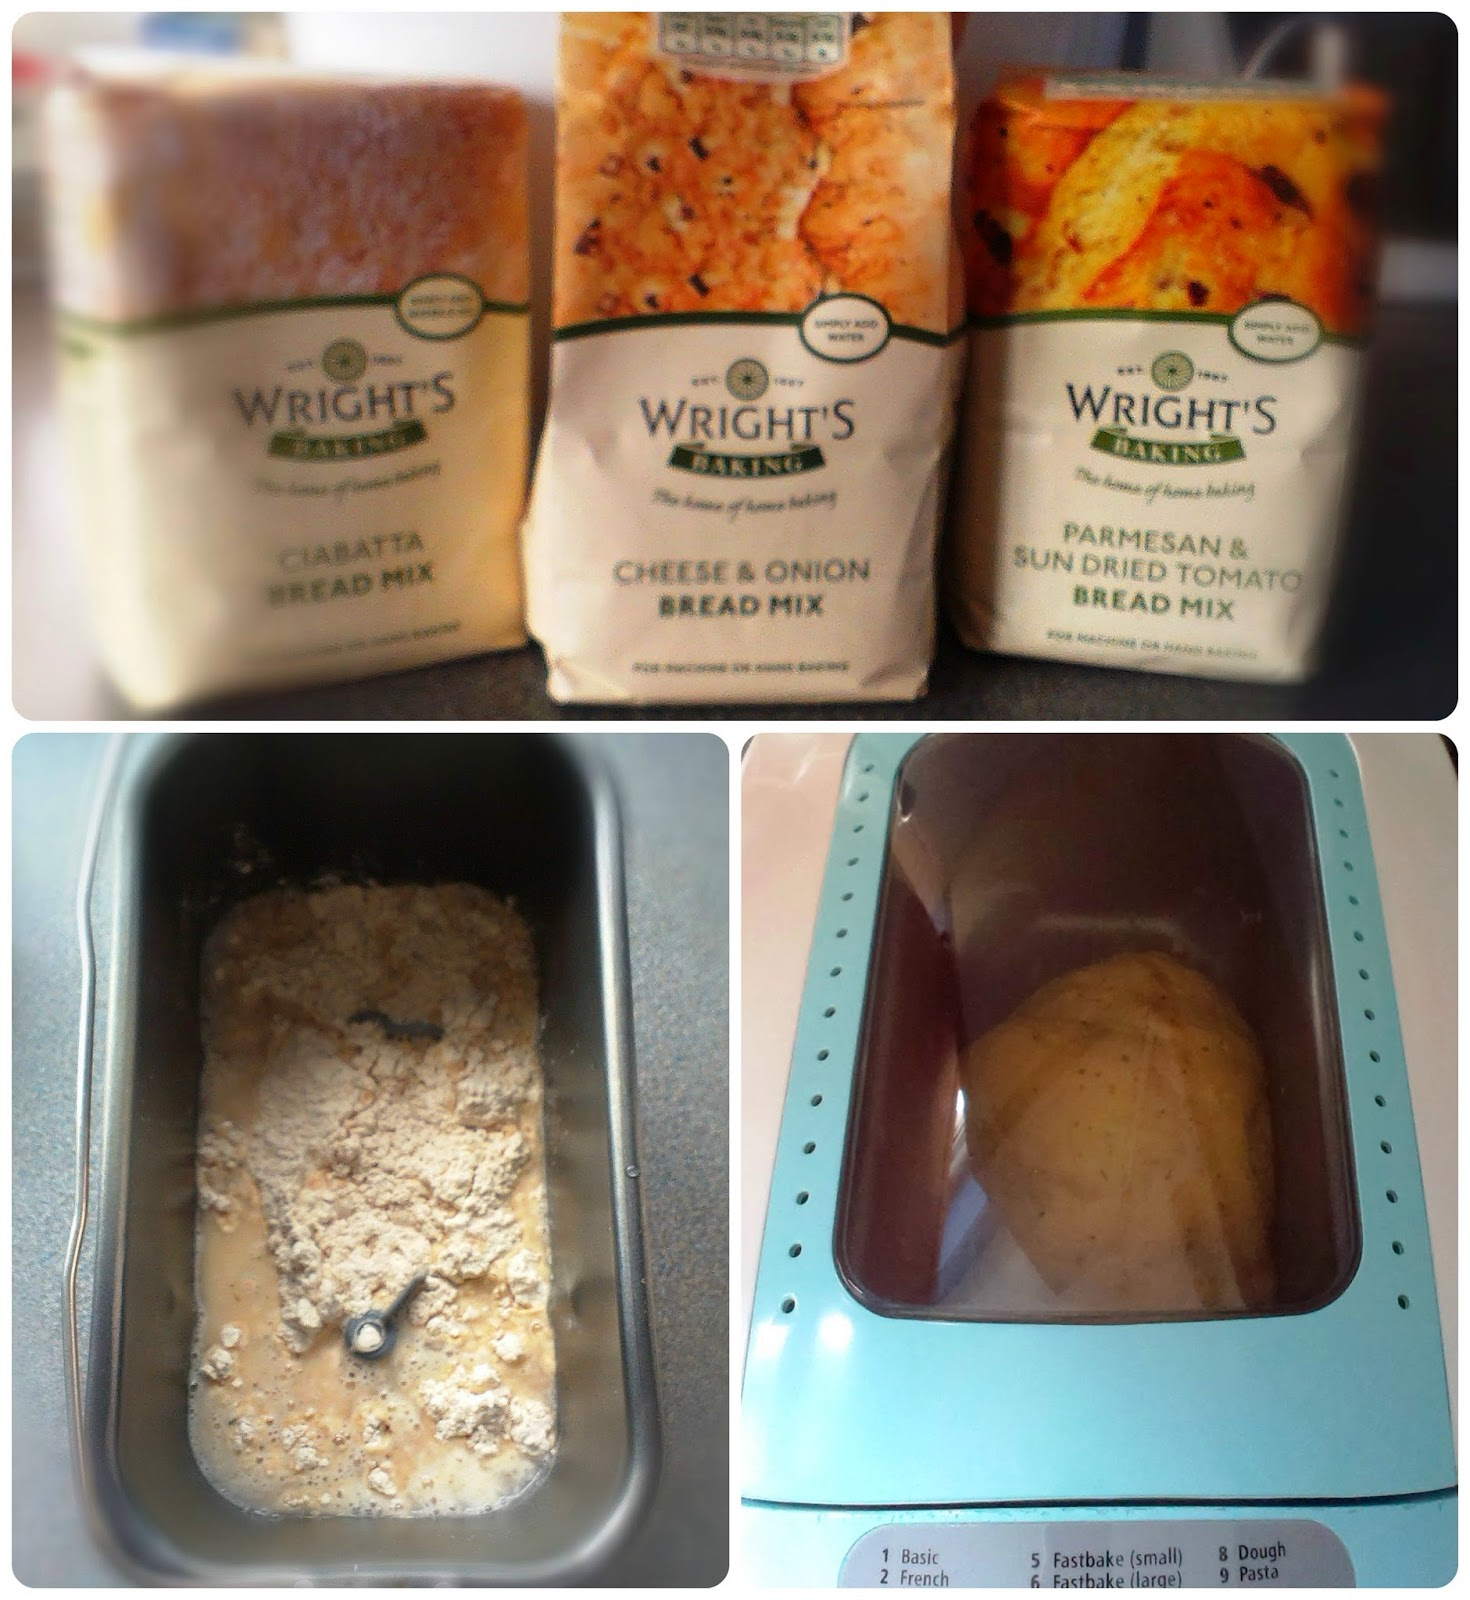 Breadmaker and bread mix packets